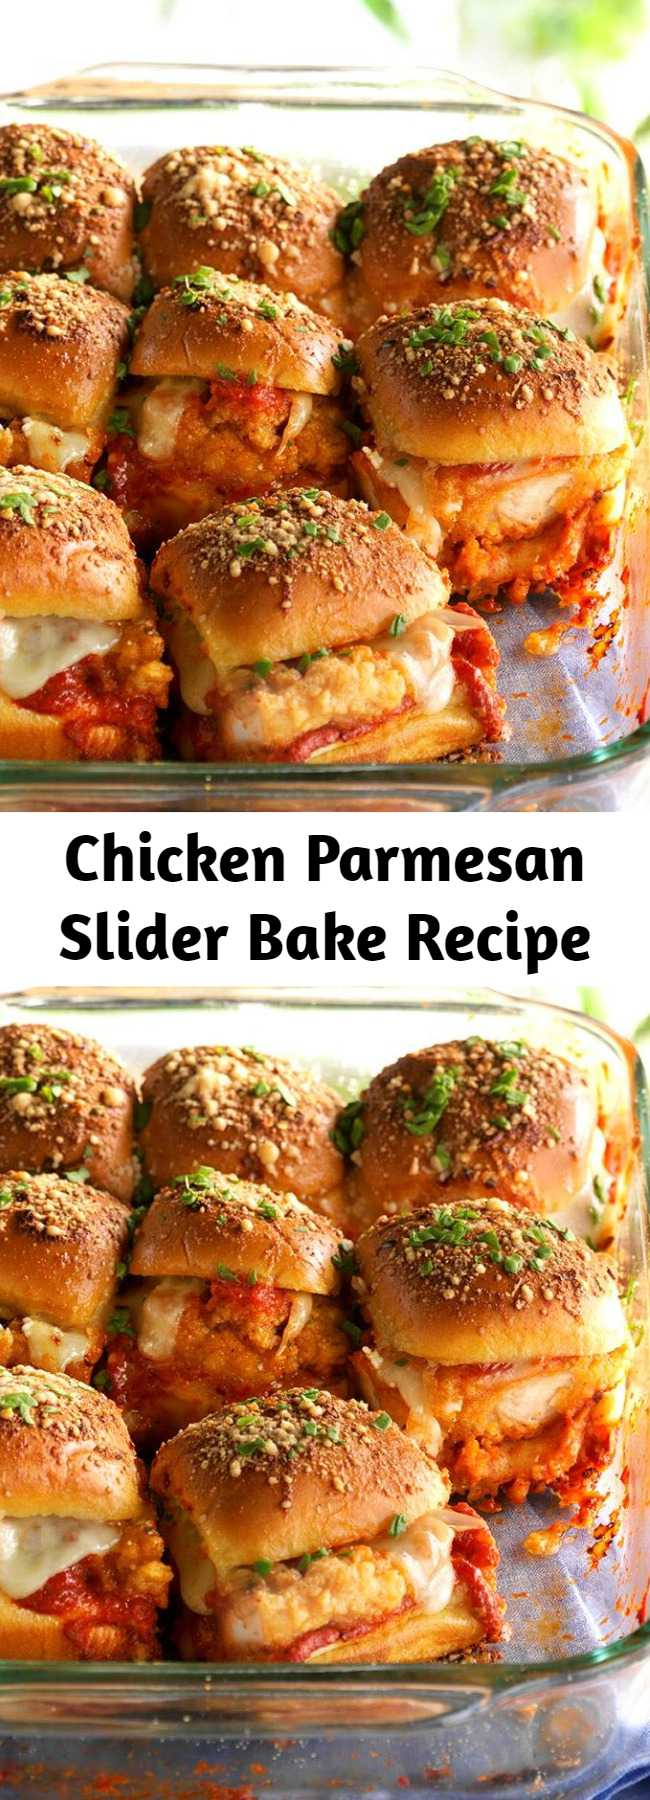 Chicken Parmesan Slider Bake Recipe - Sliders are the perfect finger food for any get-together, and this flavorful chicken Parmesan version won't disappoint.